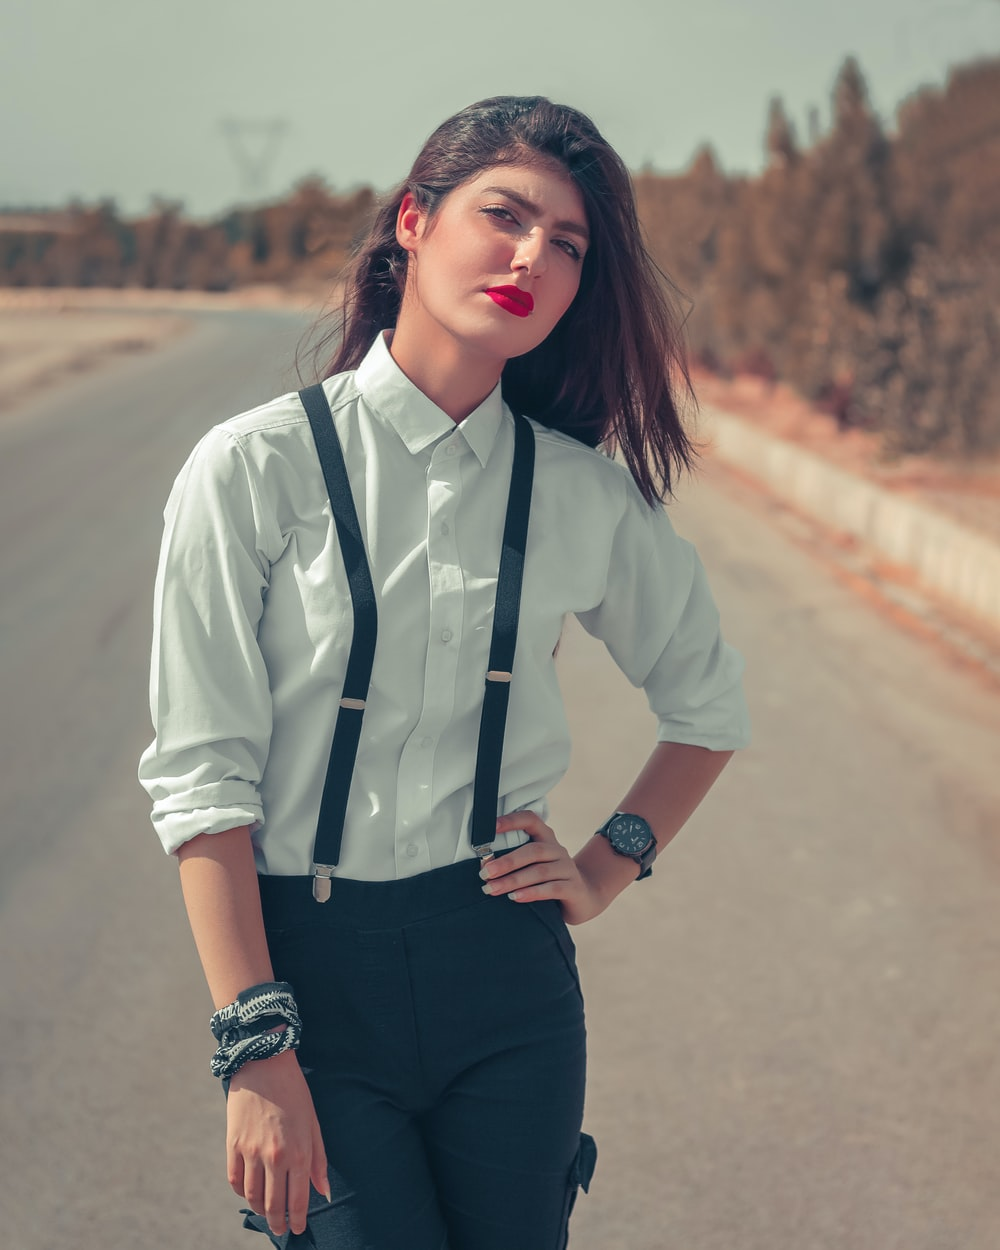 woman in white button up shirt and black pants standing on road during daytime